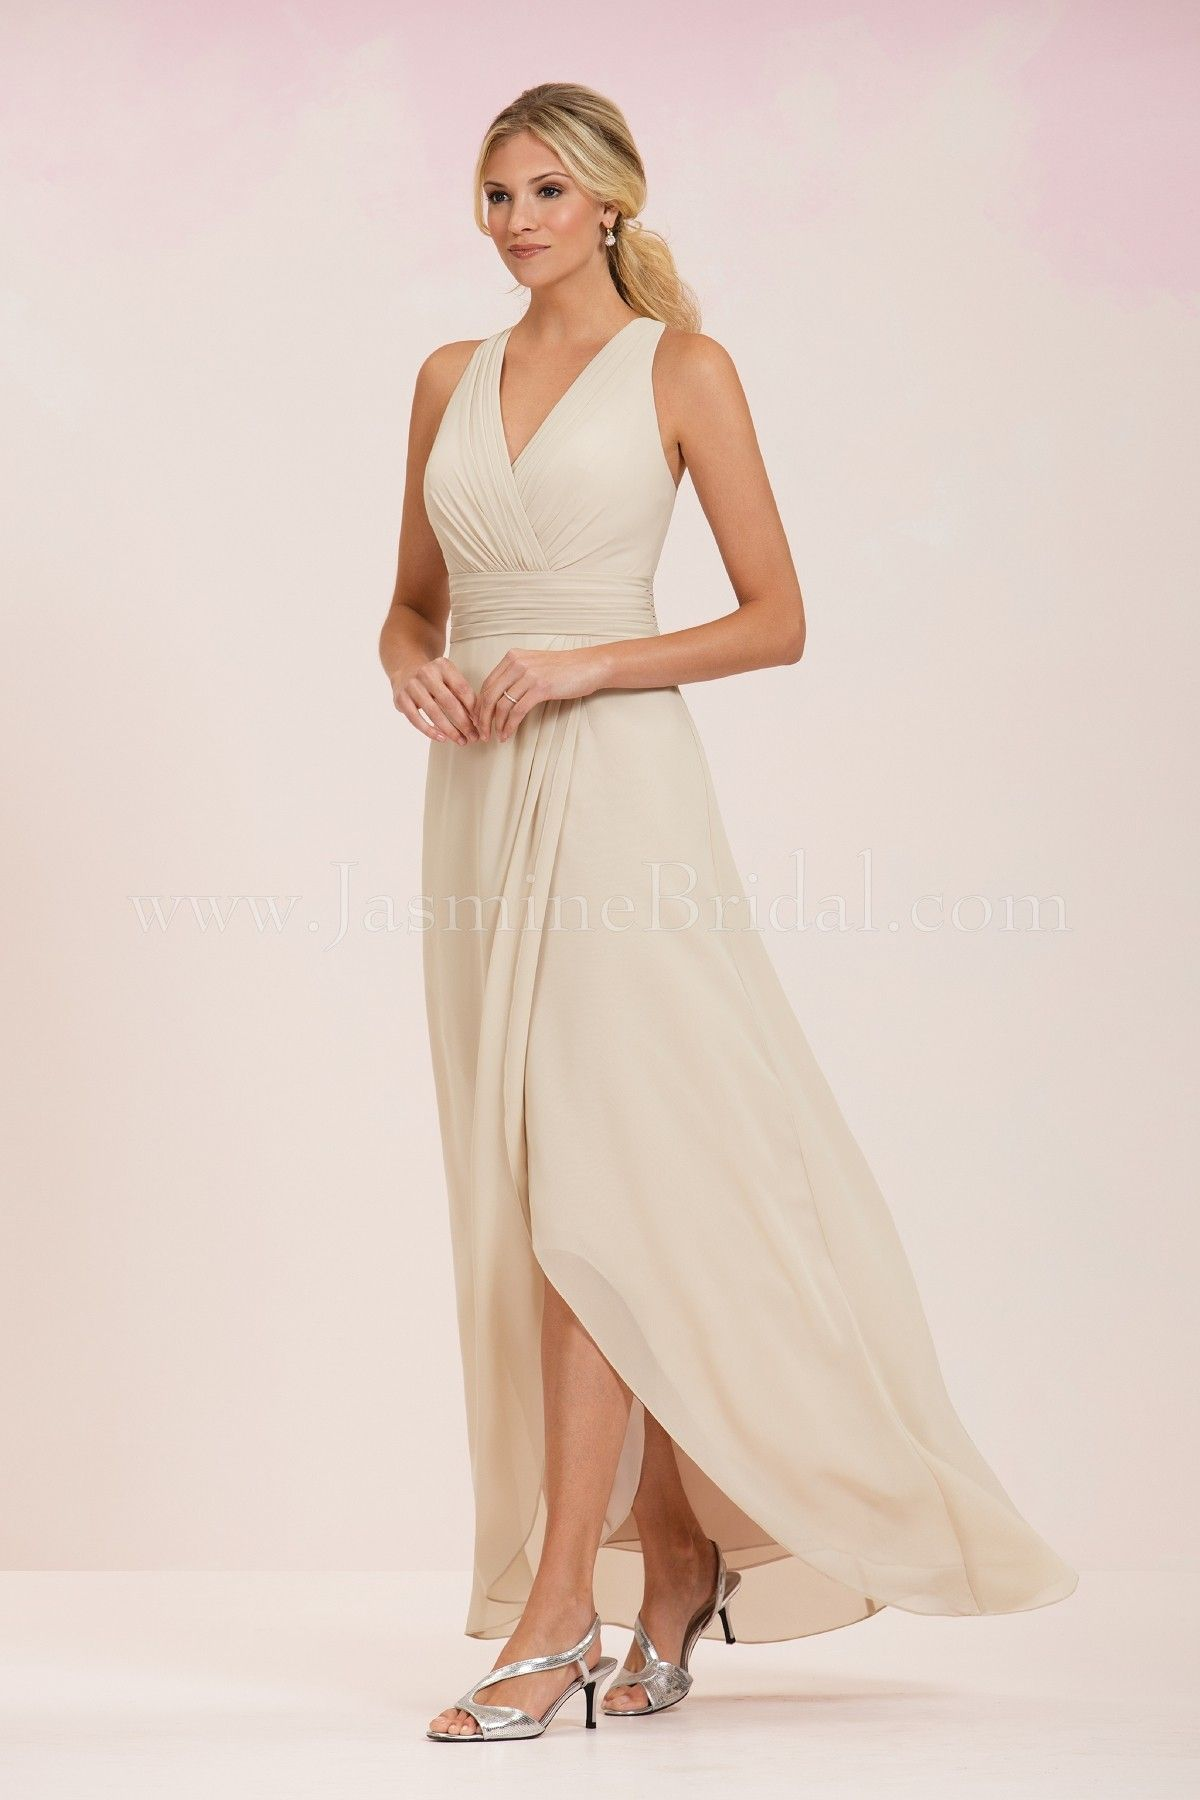 Jasmine Bridal Bridesmaid Dress Bridesmaids Style P186058 In Almond